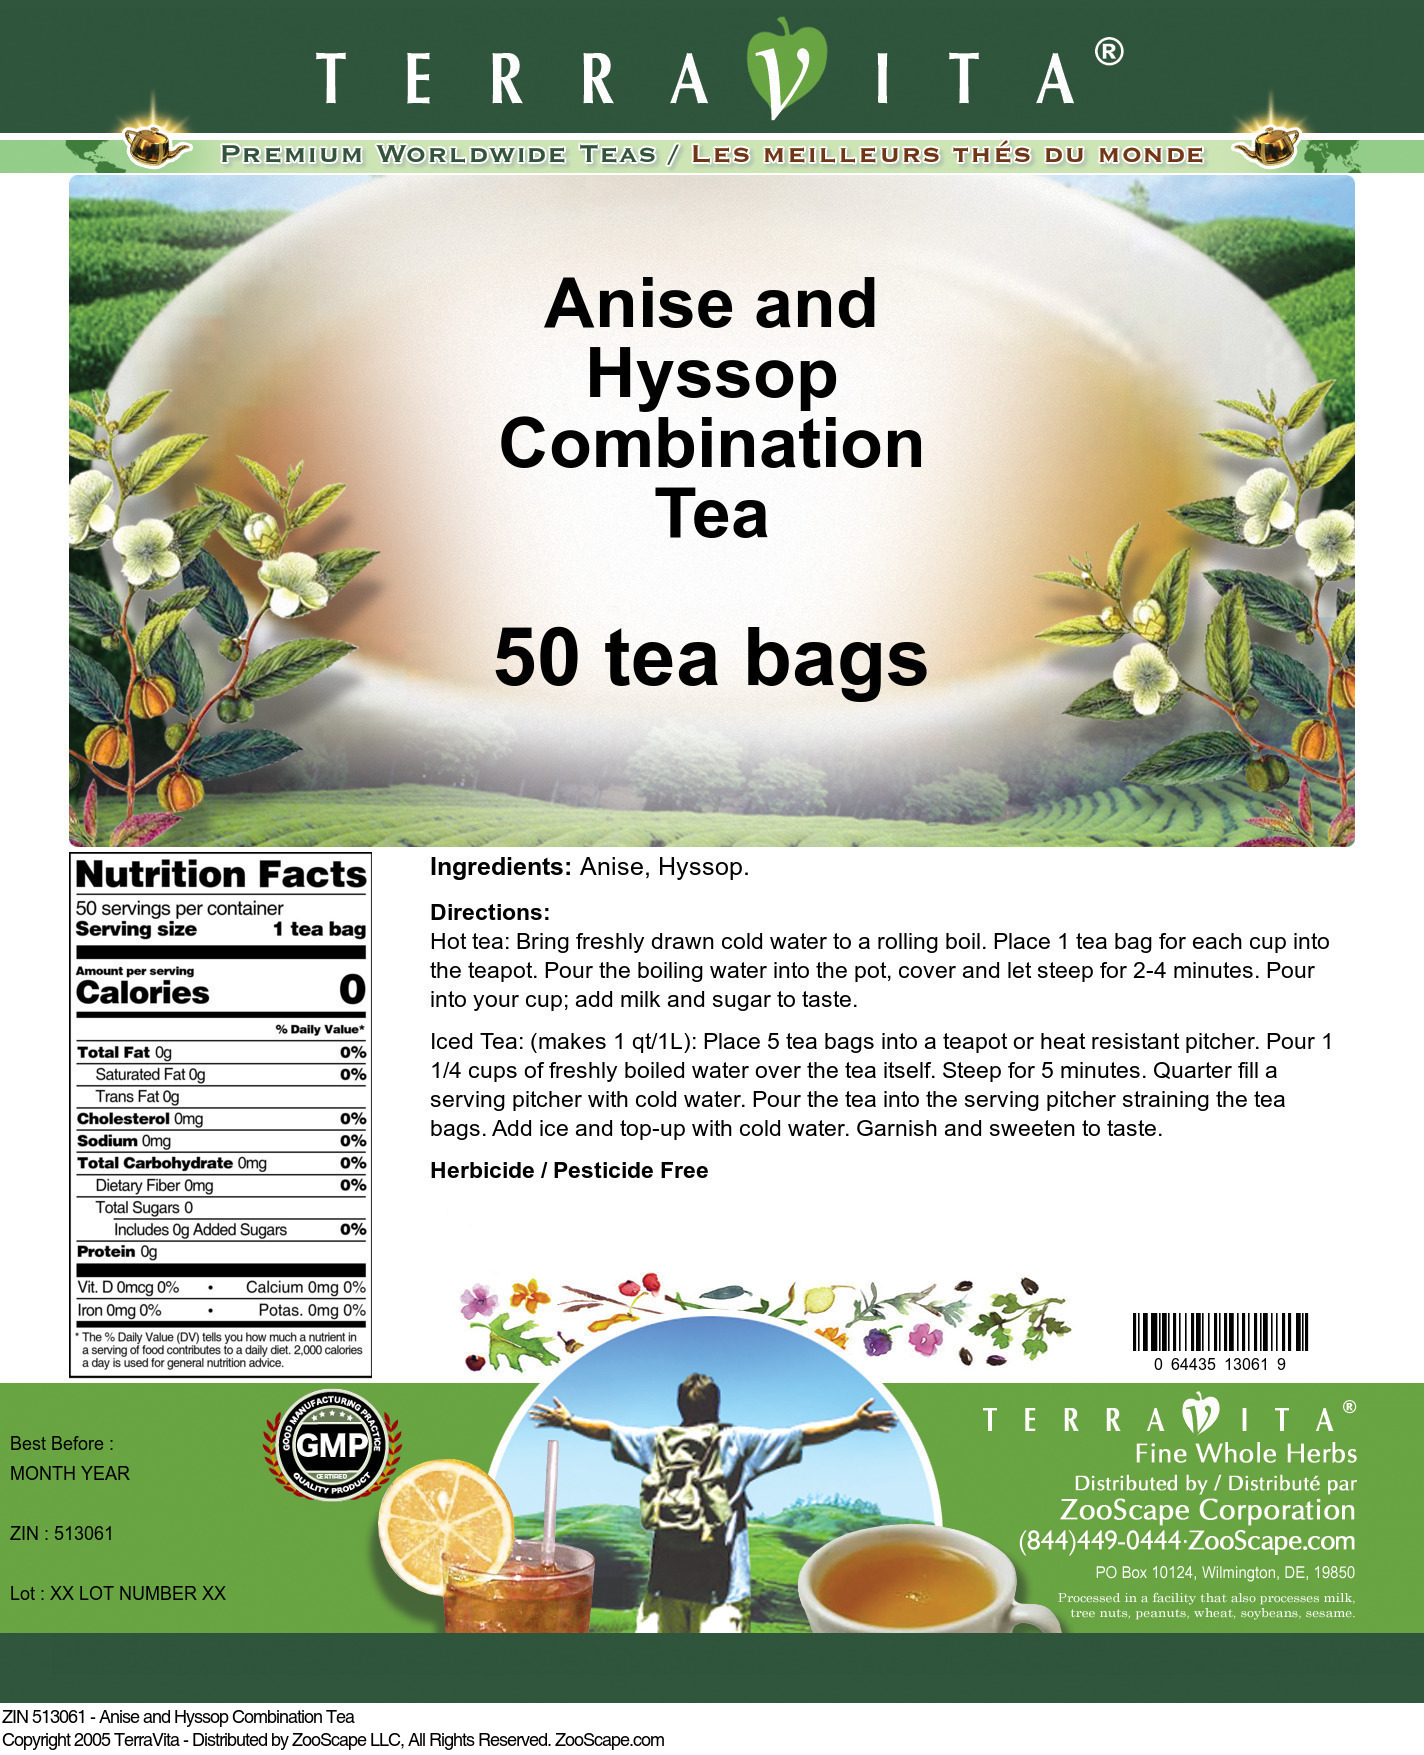 Anise and Hyssop Combination Tea